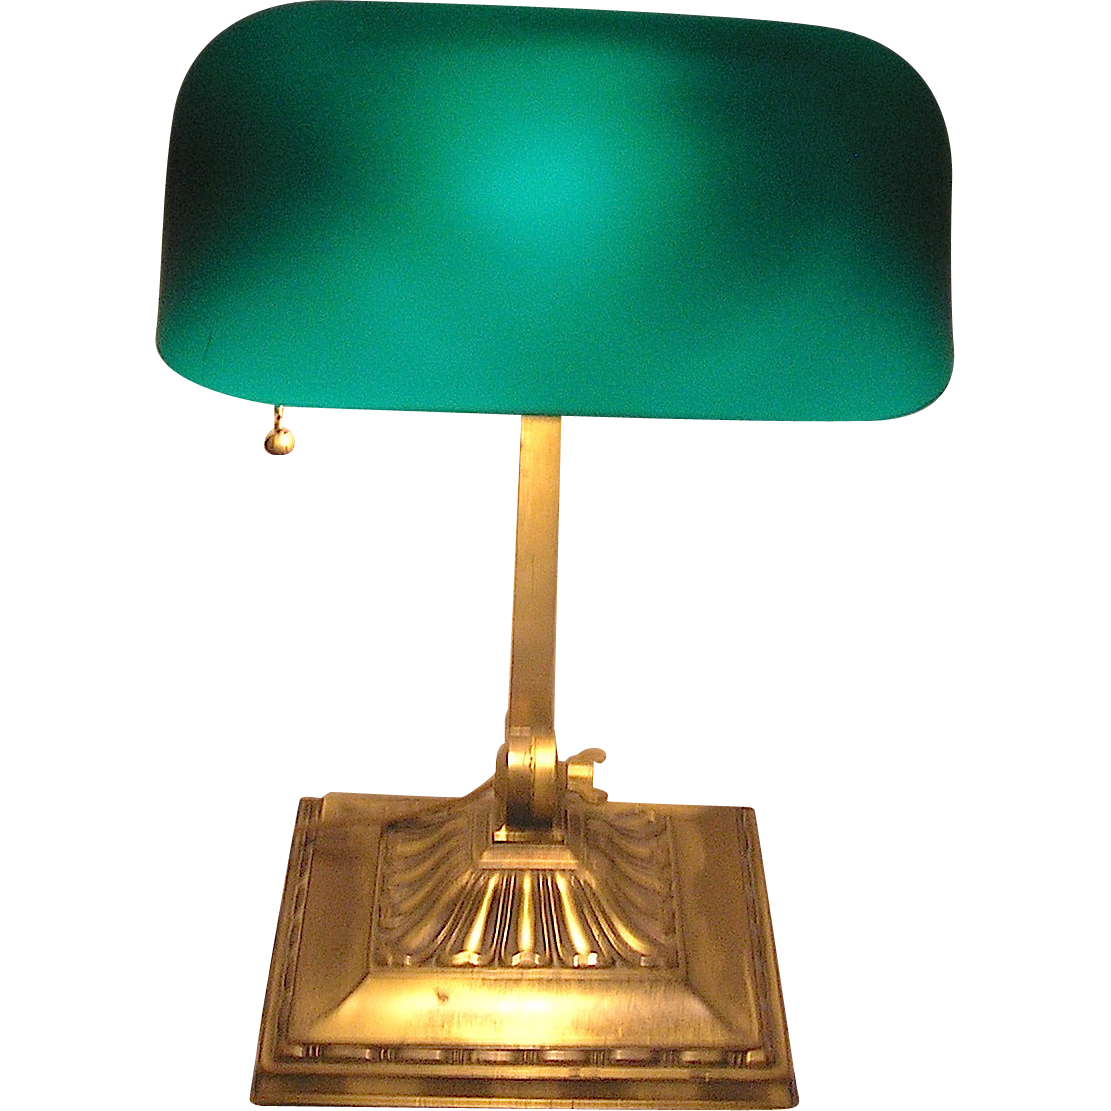 emeralite banker 39 s lamp all original stamped brass plated base from rubylane sold on ruby lane. Black Bedroom Furniture Sets. Home Design Ideas